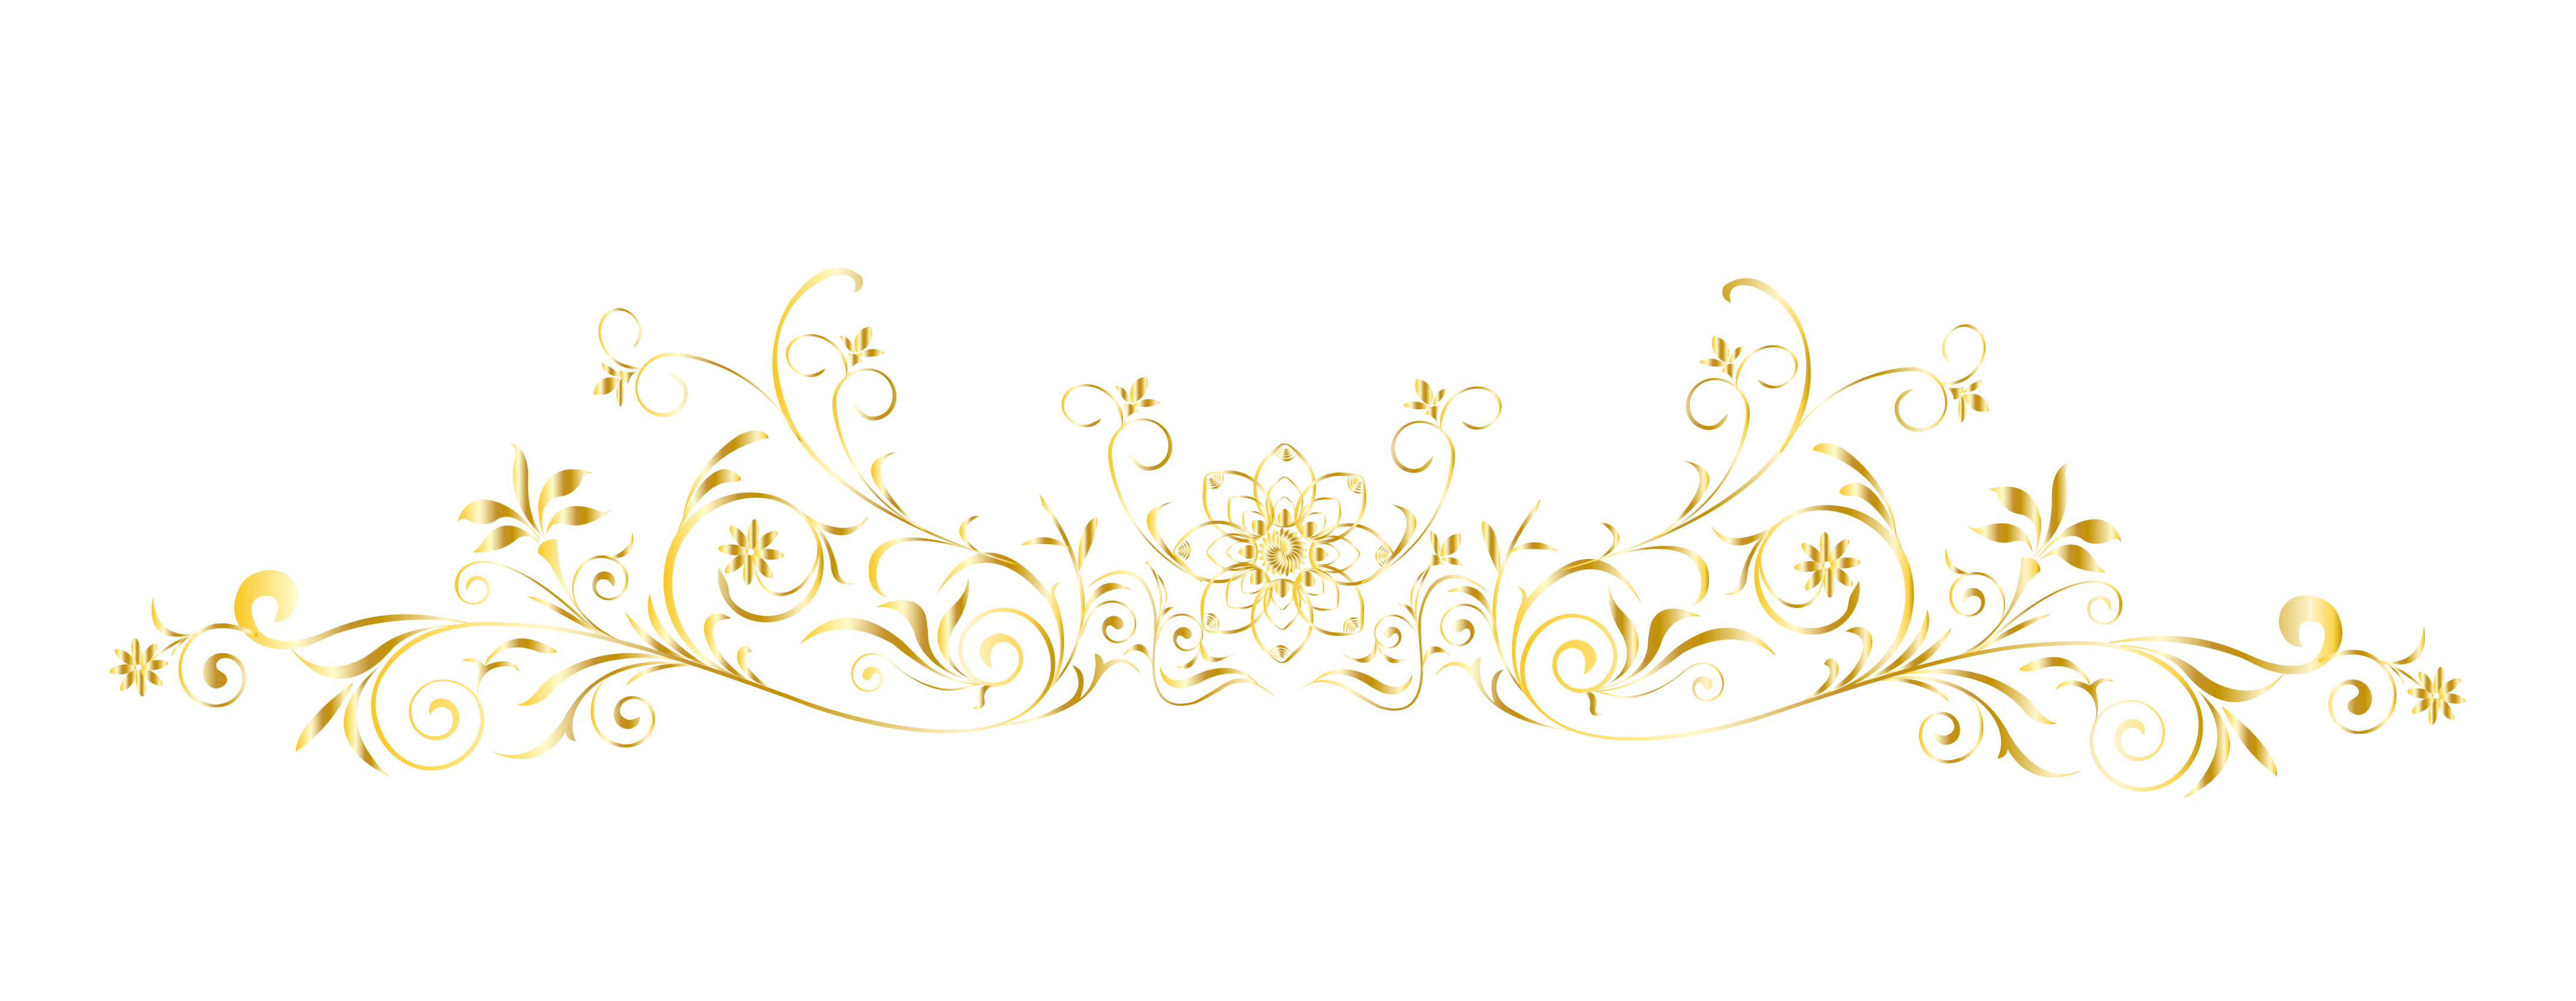 Gold frame png vector. White pattern european lines